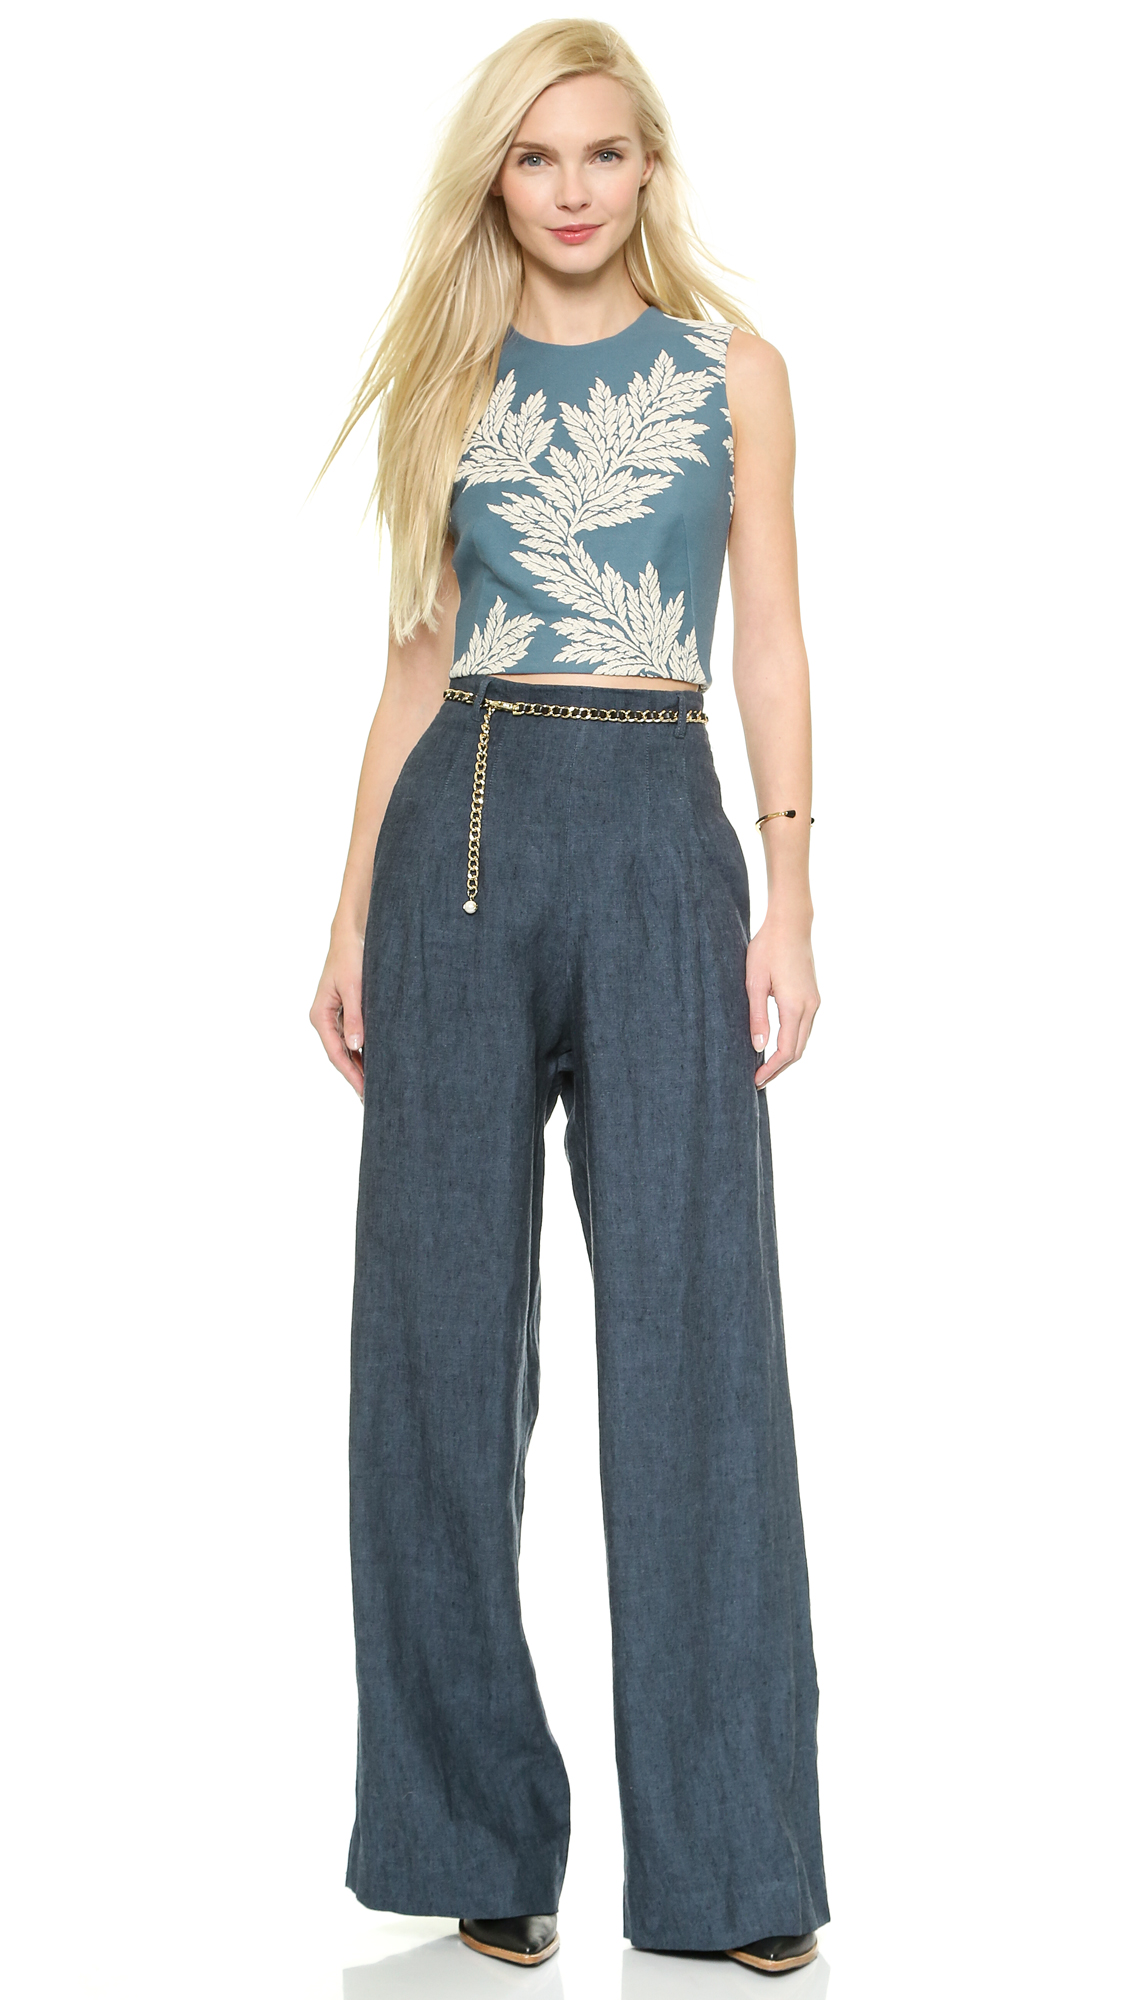 Sass & bide the force wideleg trousers